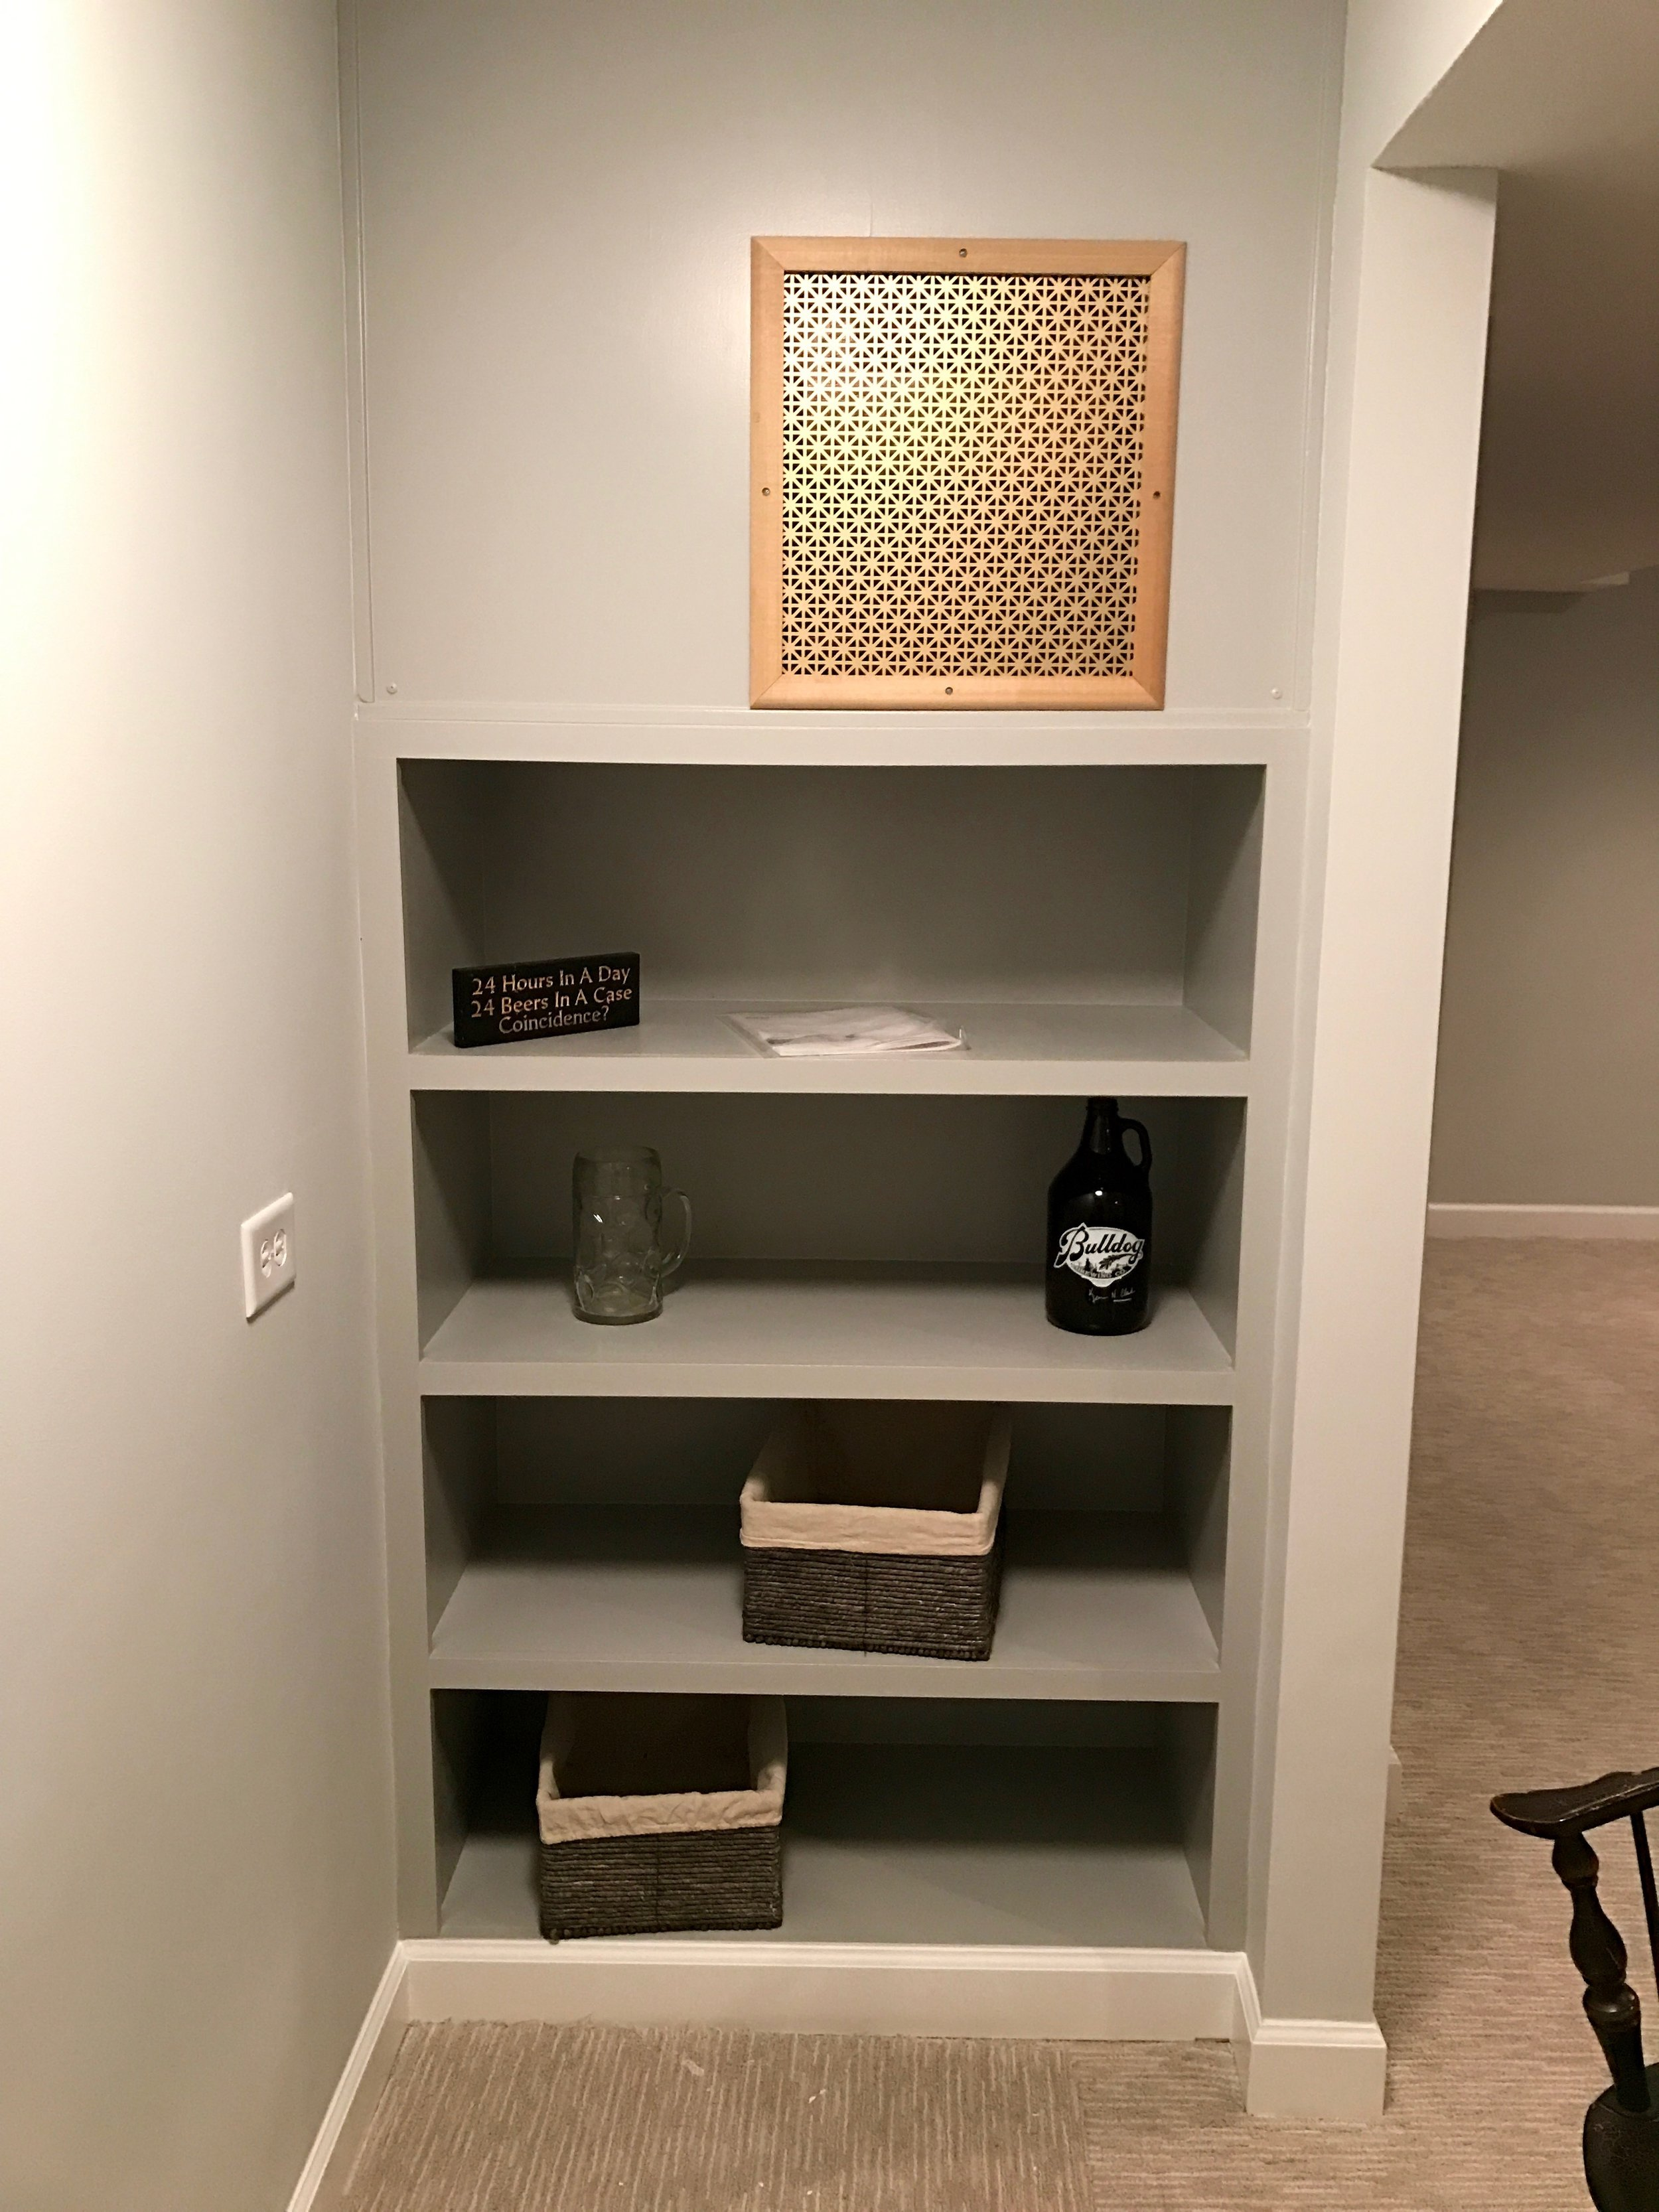 One design problem with wine cooling units is that they often project out of the wall much like a window-mounted air-conditioner. In this instance, we built a custom shelving unit with a grill to allow for additional storage, air transfer, and better visuals. Removable panels allow for easy access to the wine cooling unit if it needs service.